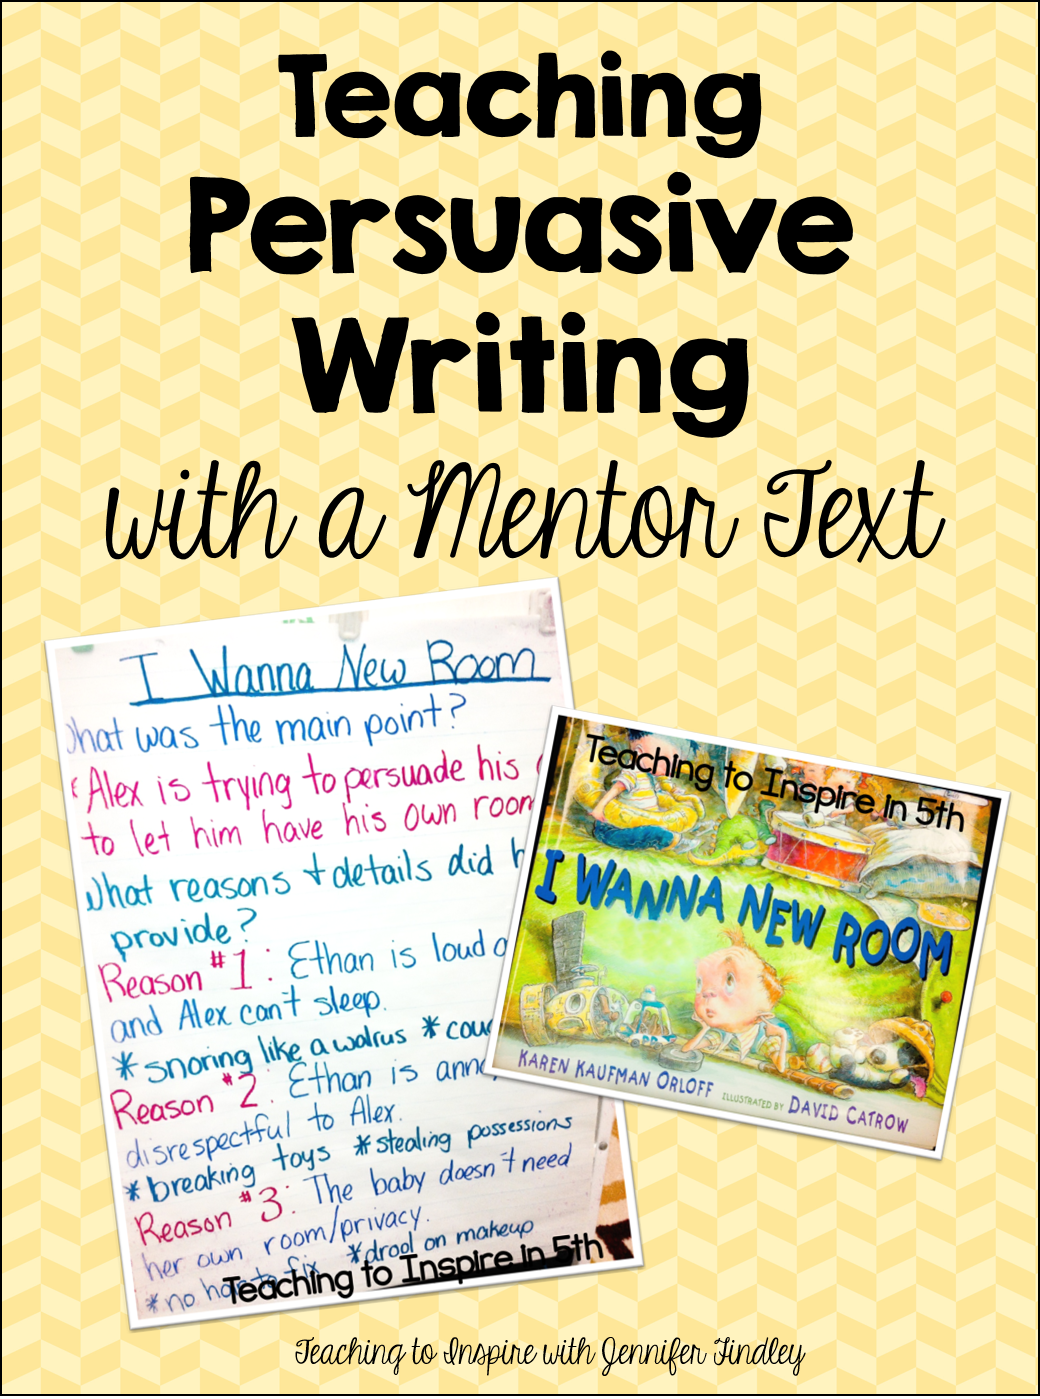 004 Teaching Persuasive Writing with a Mentor Text 2